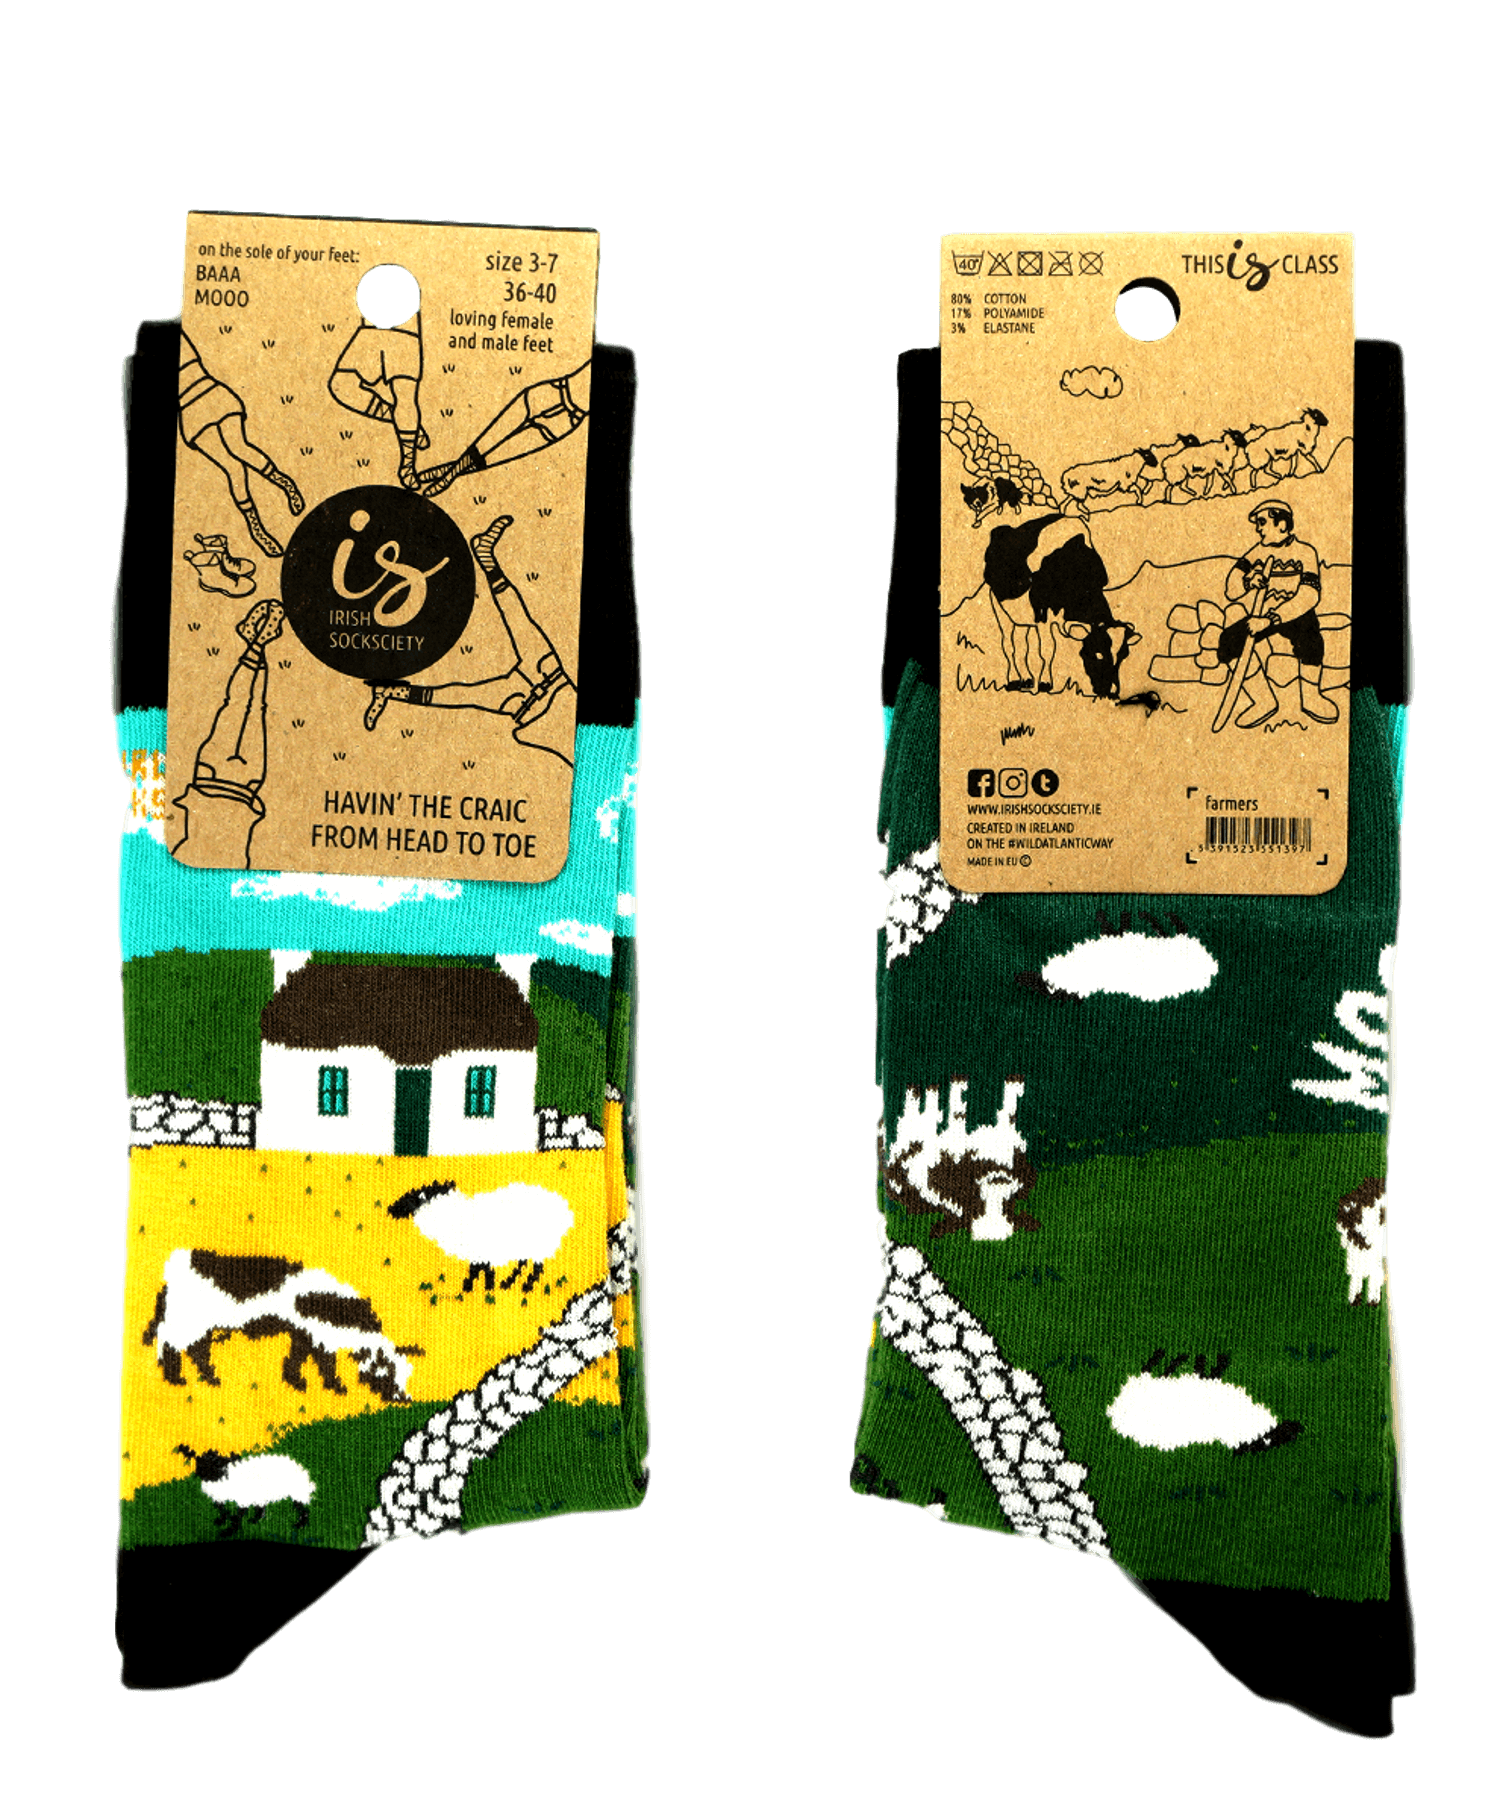 Socks - Irish Landscape - [Irish Socksciety] - Socks & Slippers - Irish Gifts